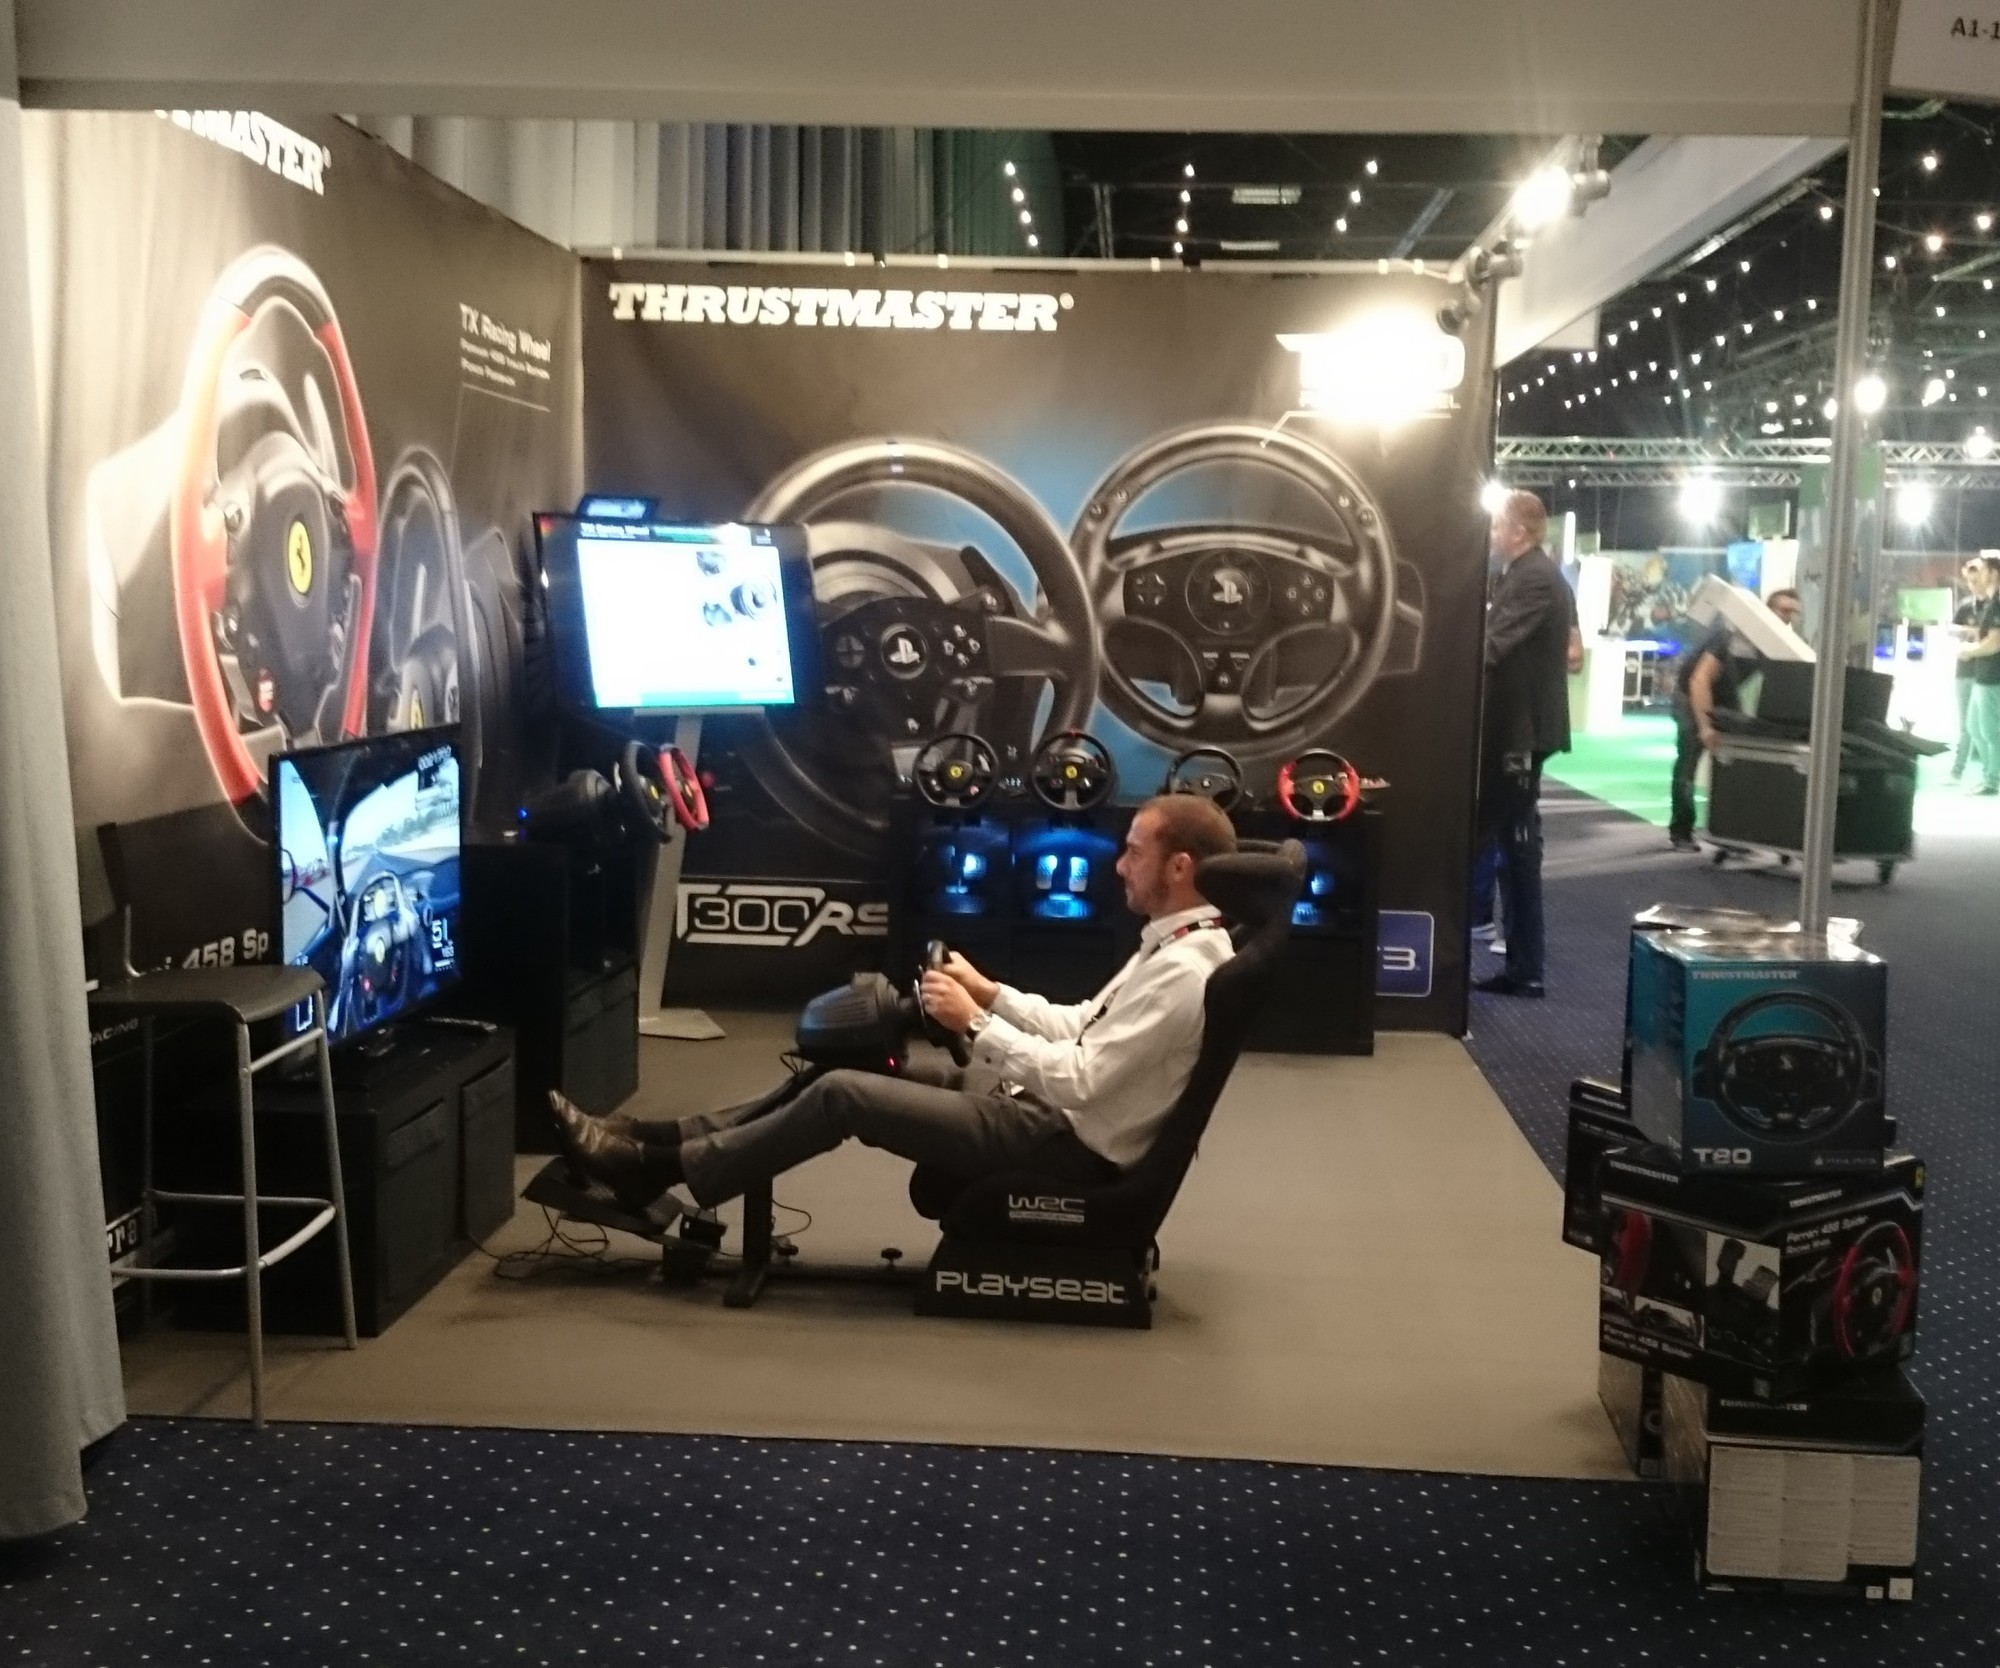 Playseat® WRC at Thrustmaster stand